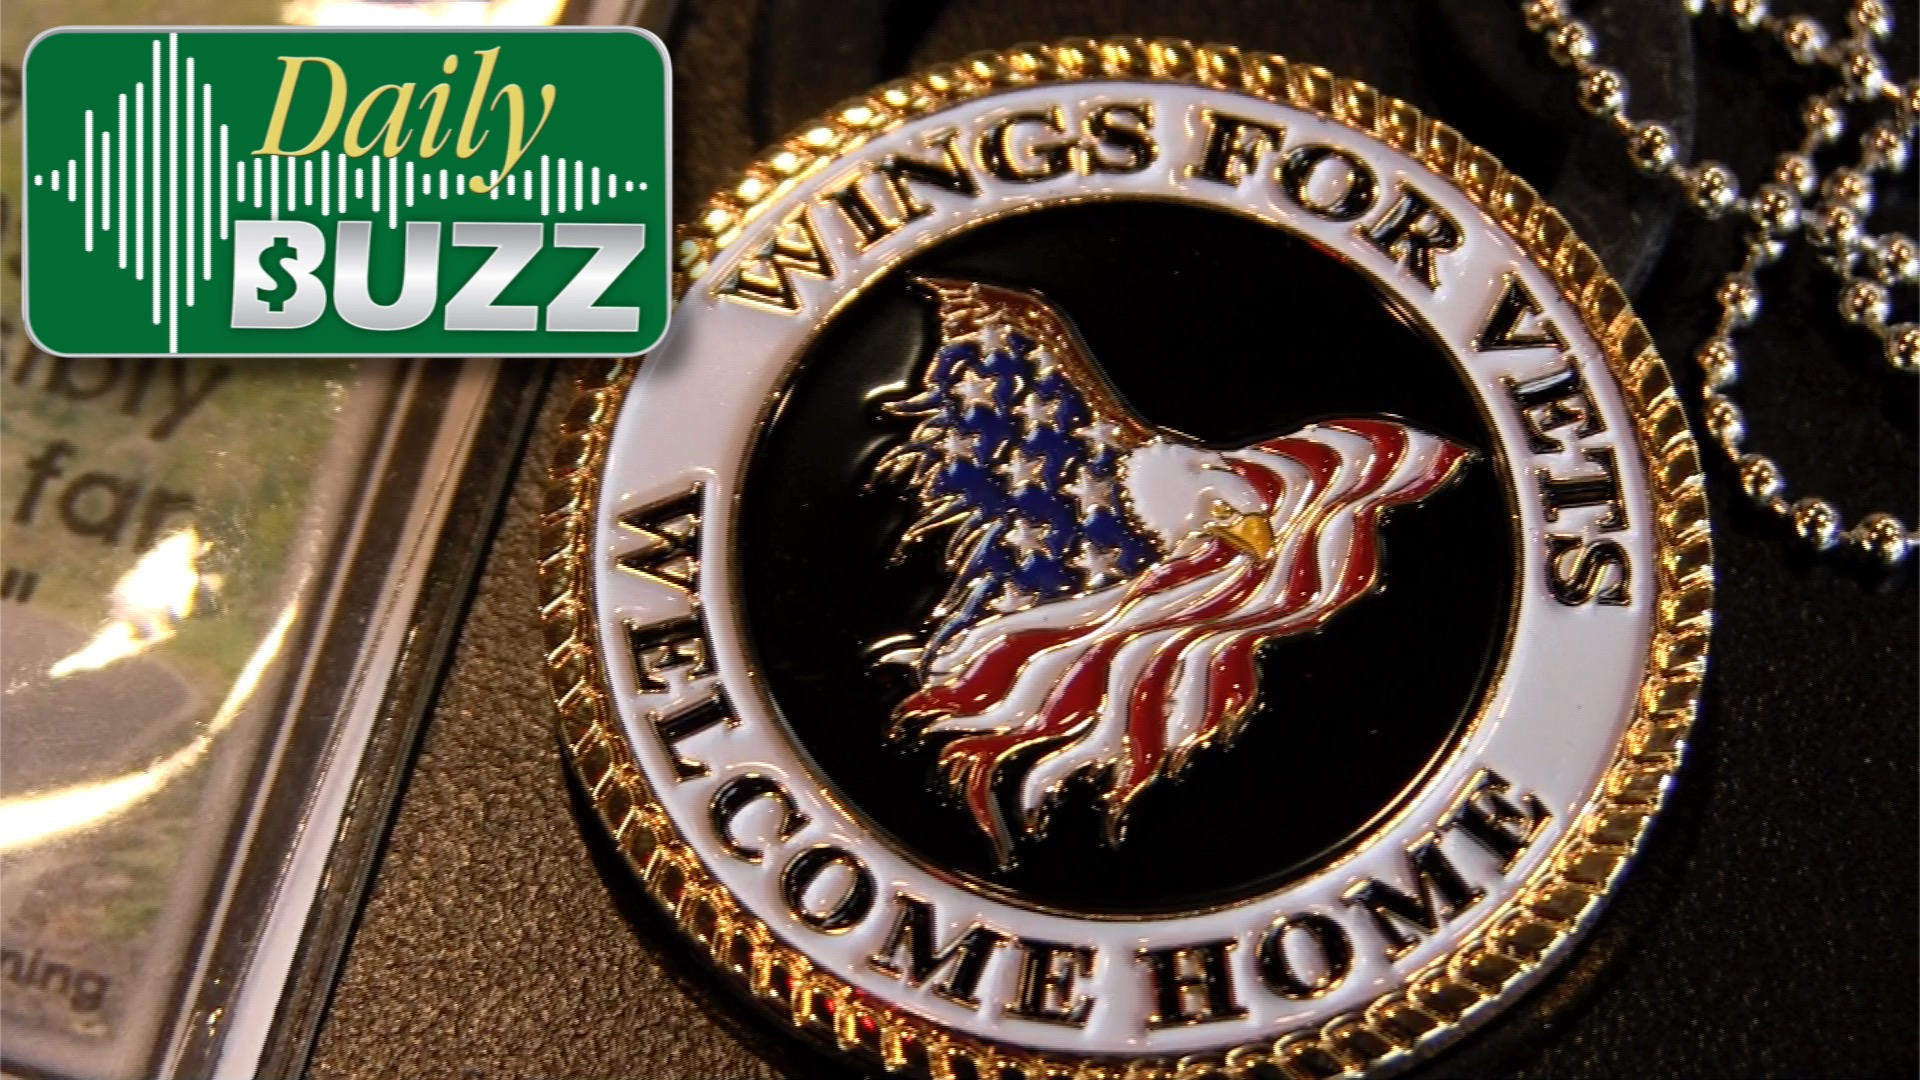 Wings for Vets